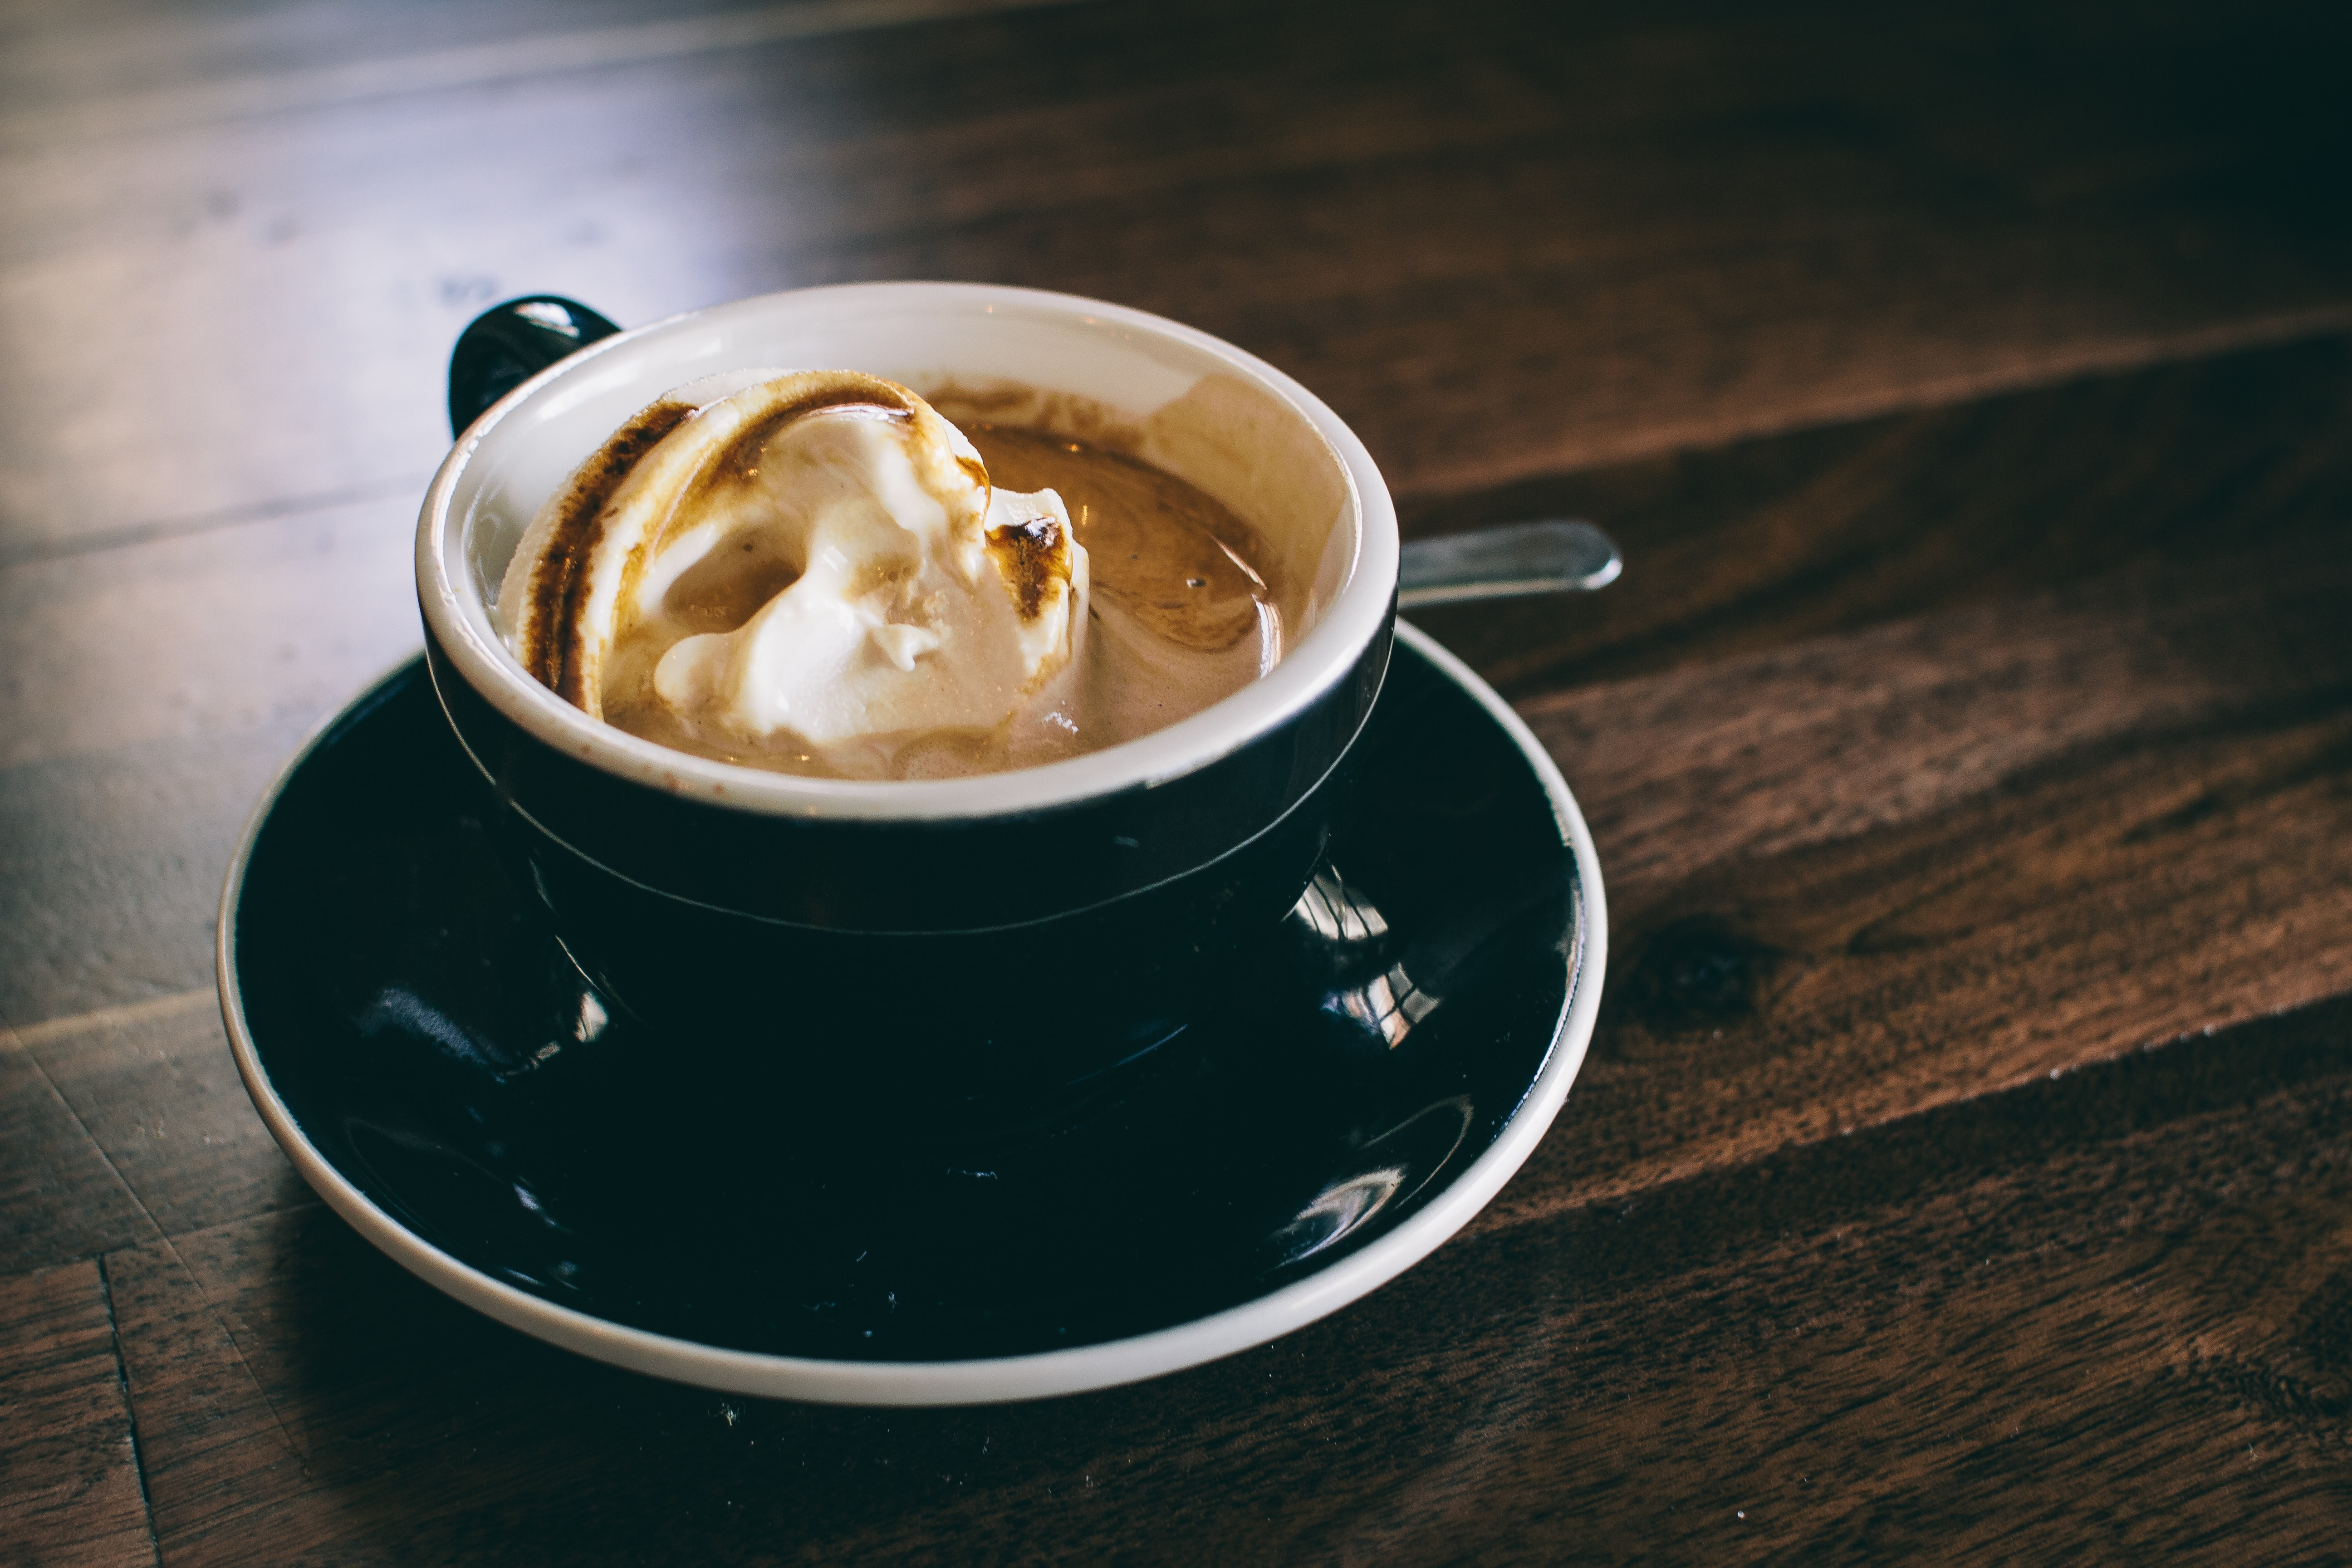 Ice cream in a cup of coffee or hot chocolate on a black mug and plate